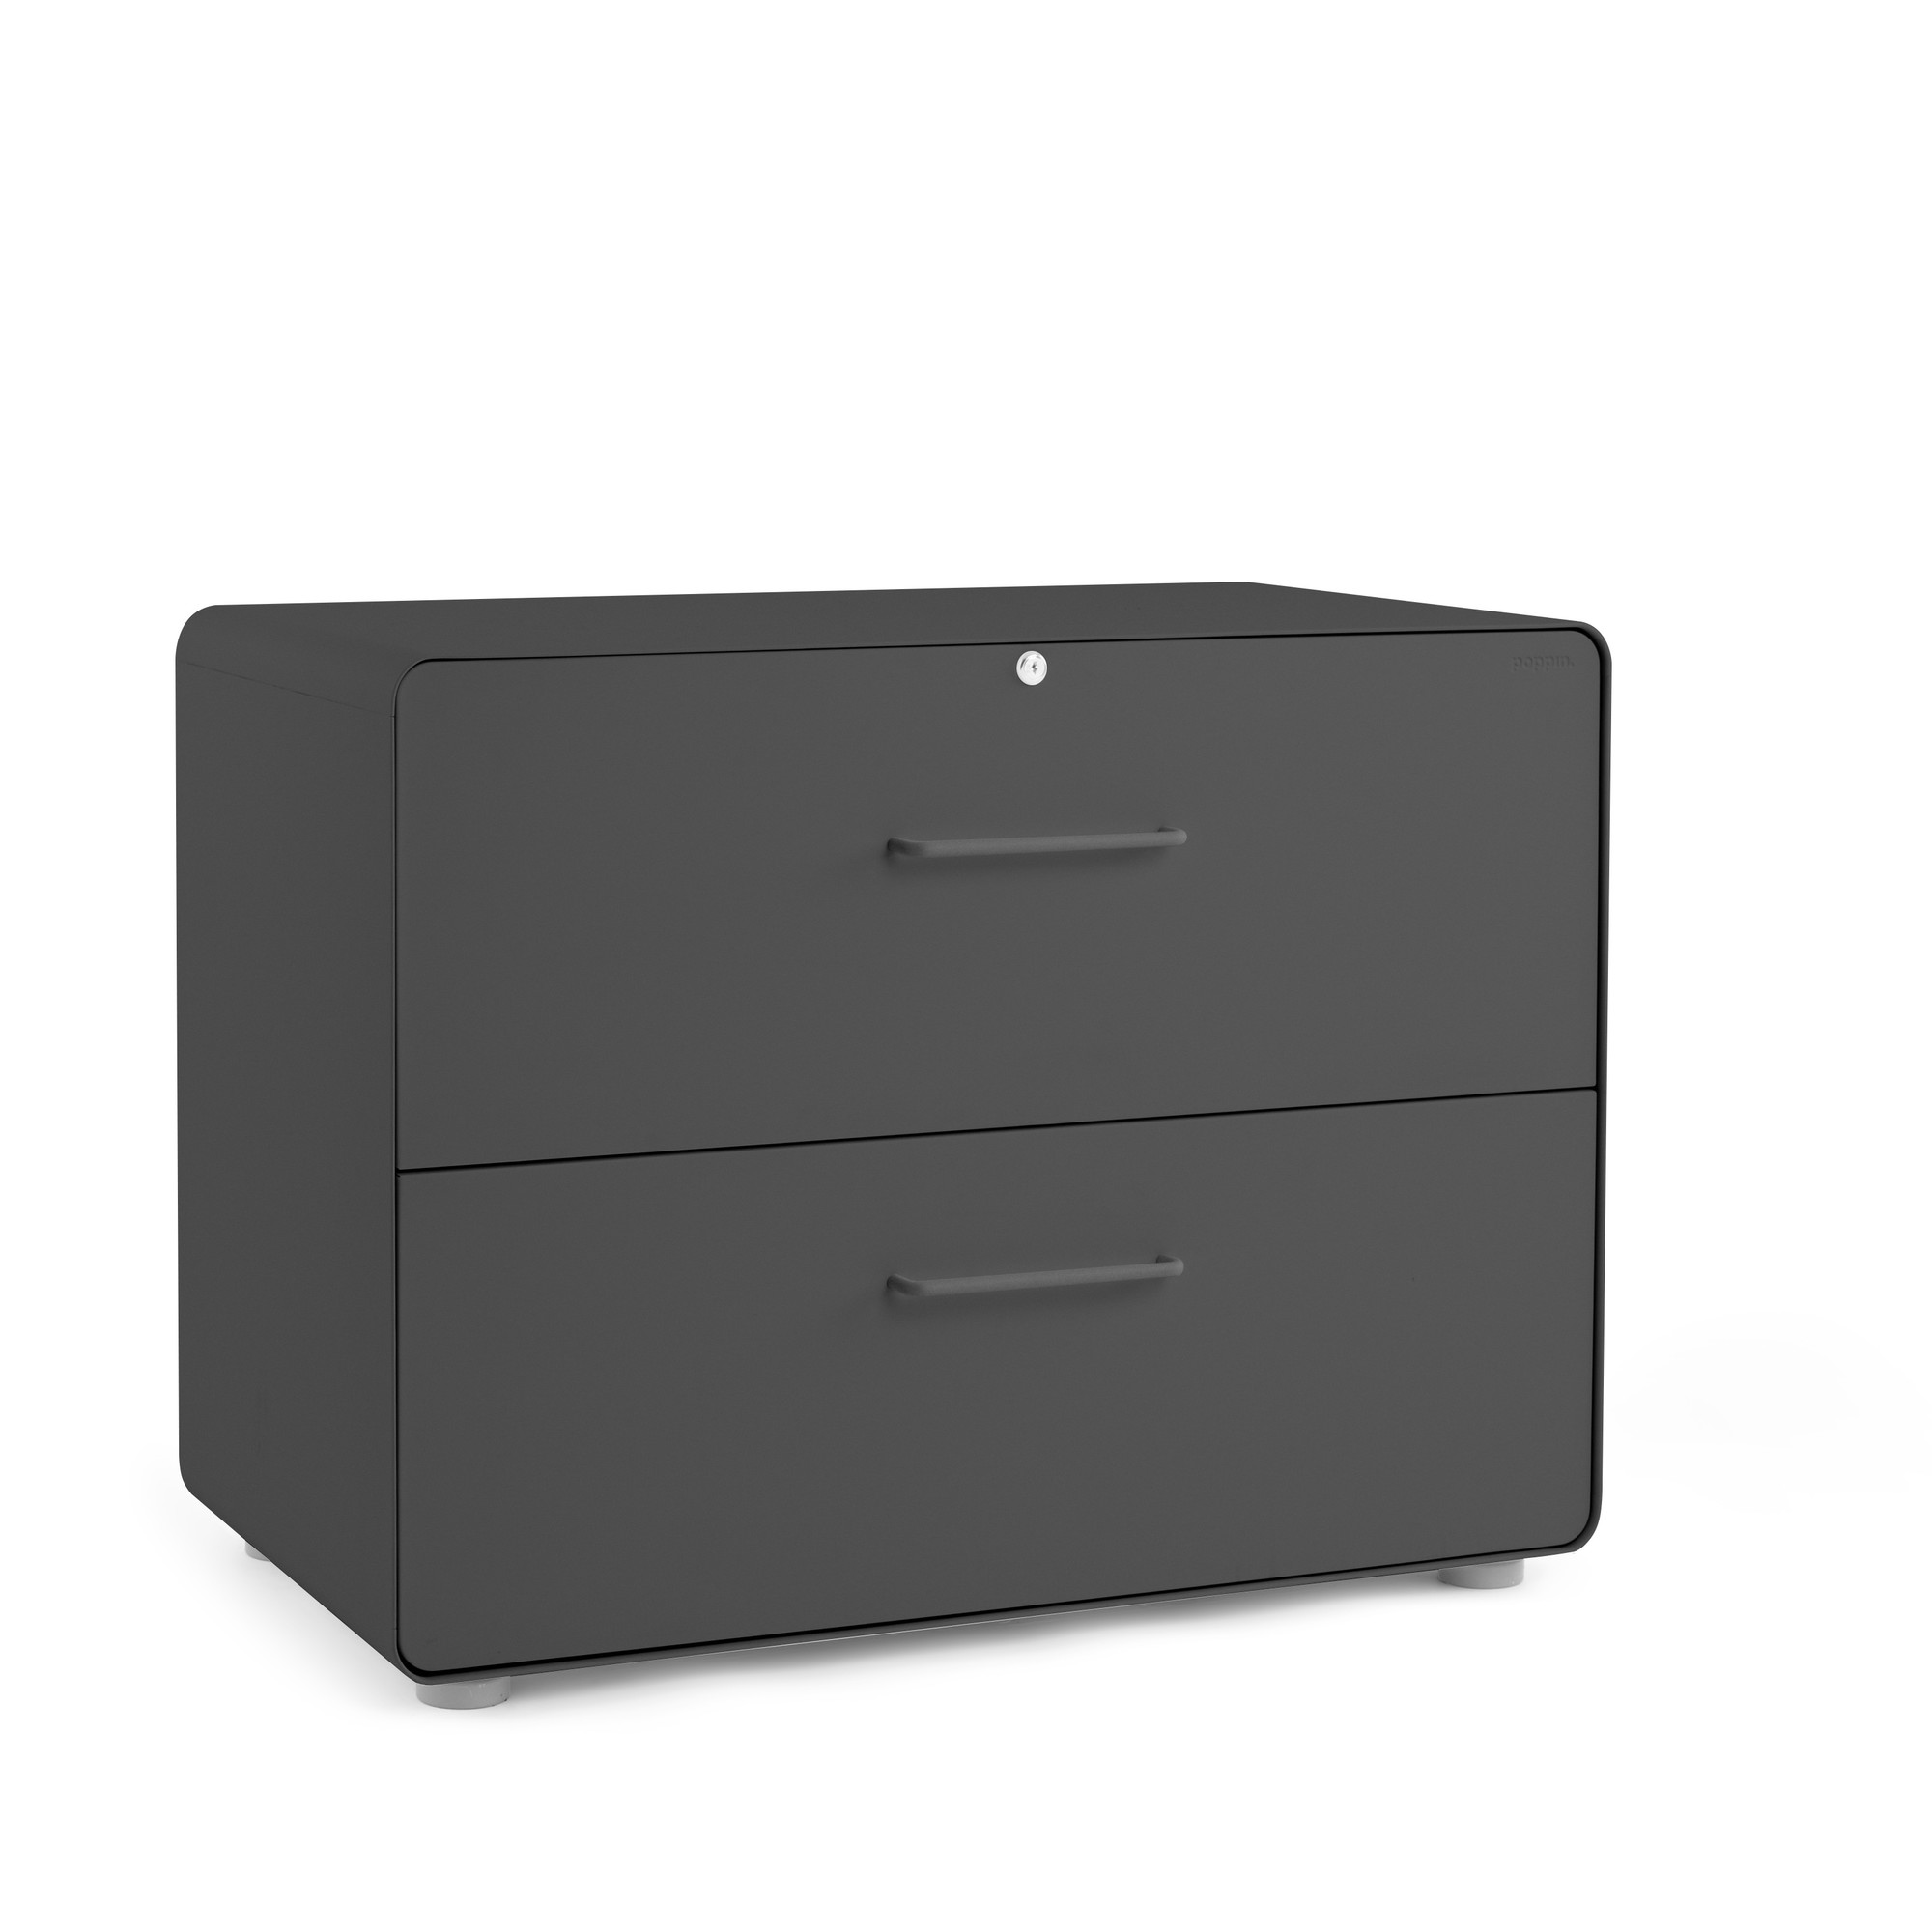 Charcoal Stow 2 Drawer Lateral File Cabinet File Cabinets Storage Poppin